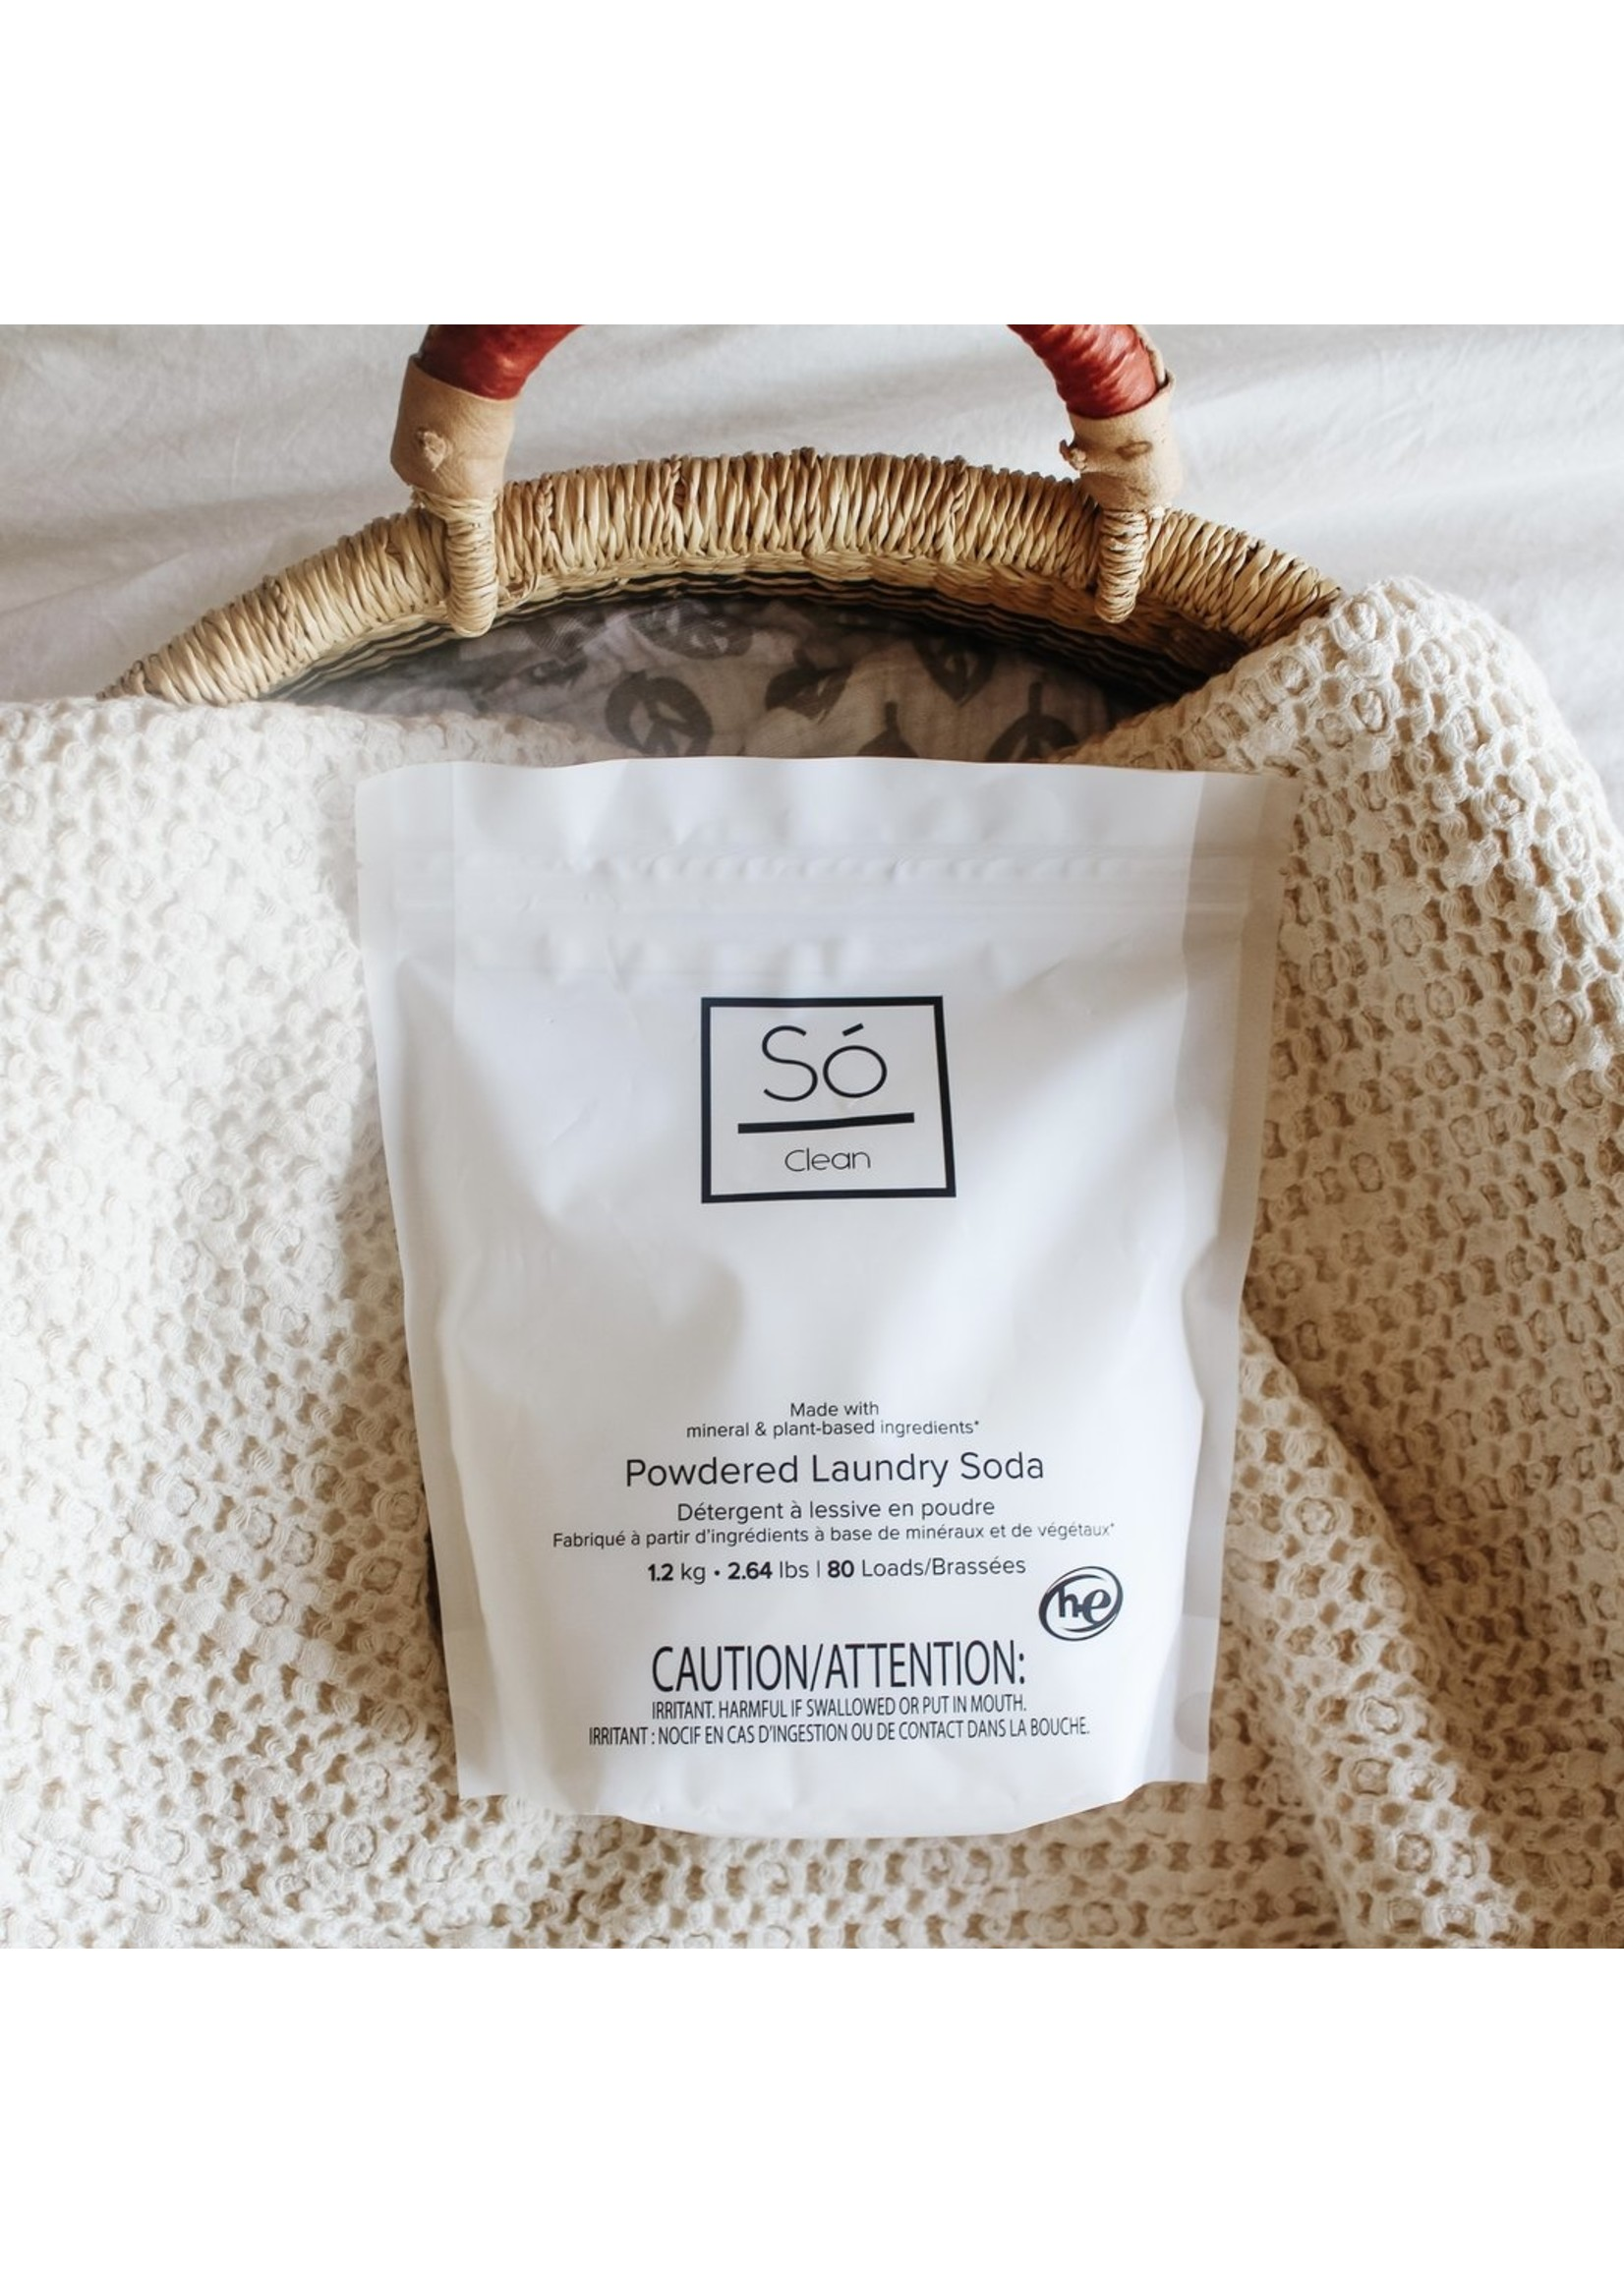 So Luxury Clean - Powdered Laundry Soap